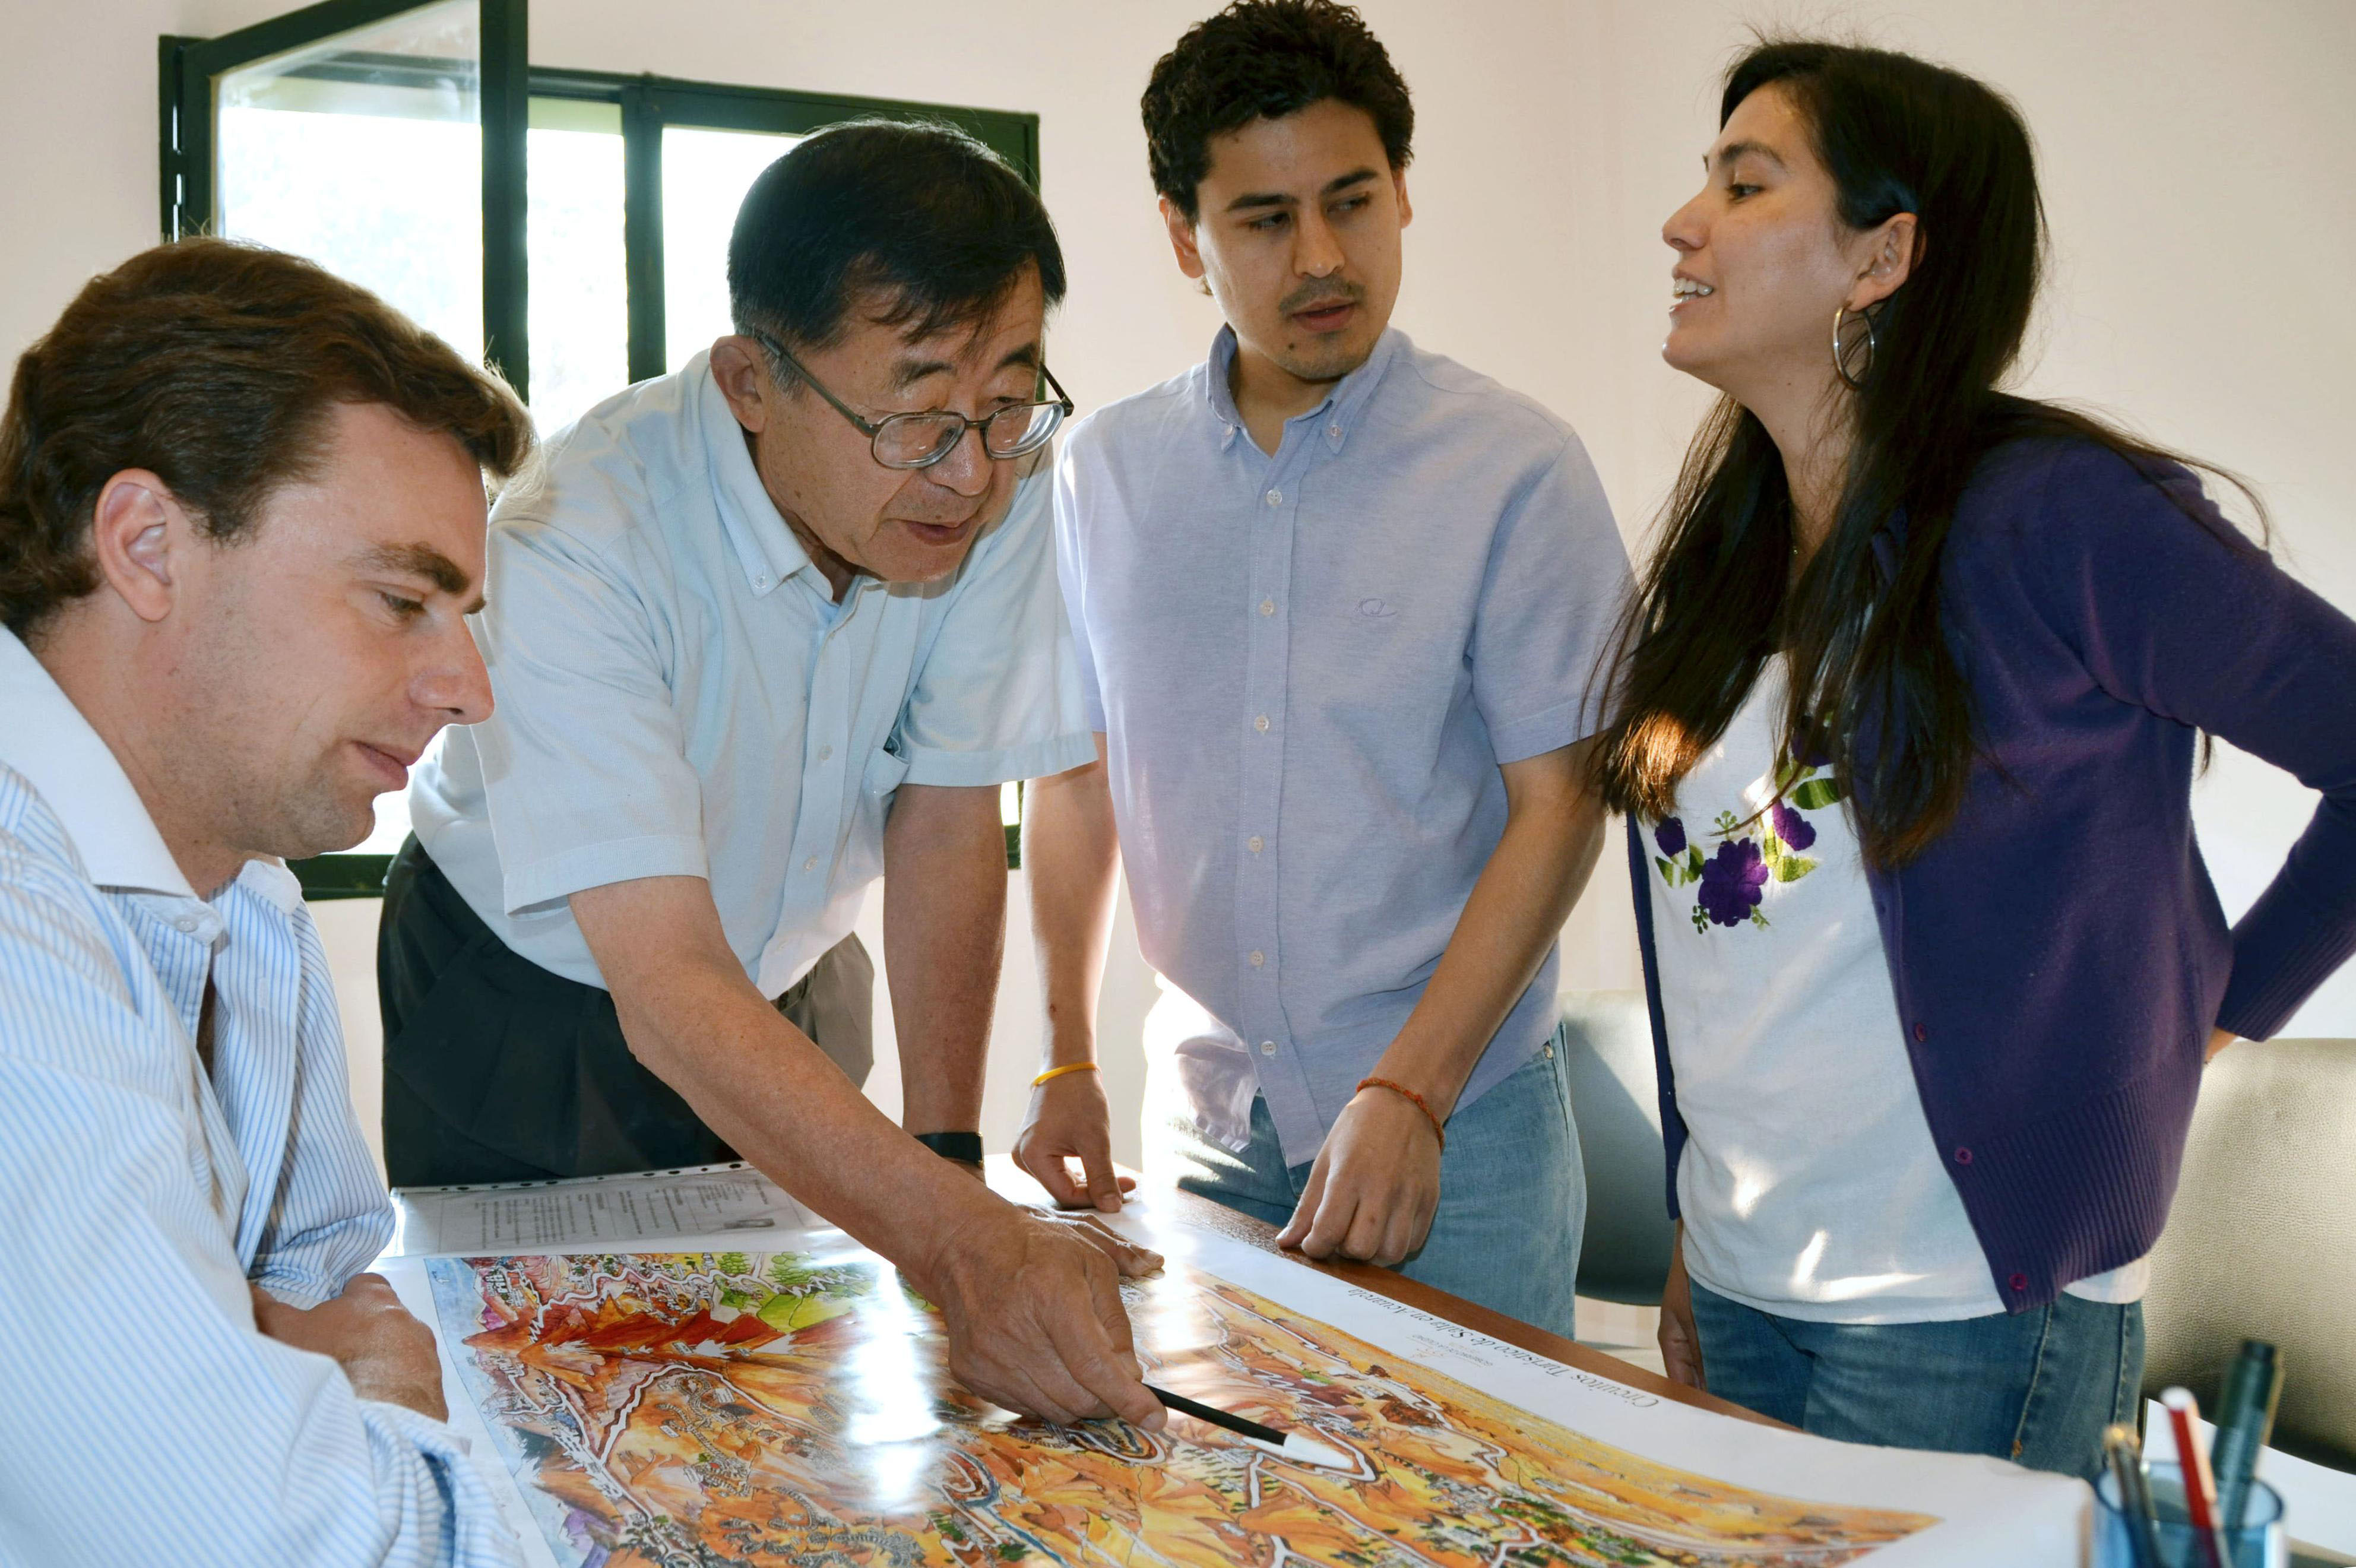 Laying it out: Akitada Oishi (second from left), former mayor of Hita, Oita Prefecture, looks at a local tourist map in the government office of the northern Argentine province of Salta on Sept. 11, together with Salta government employees | KYODO